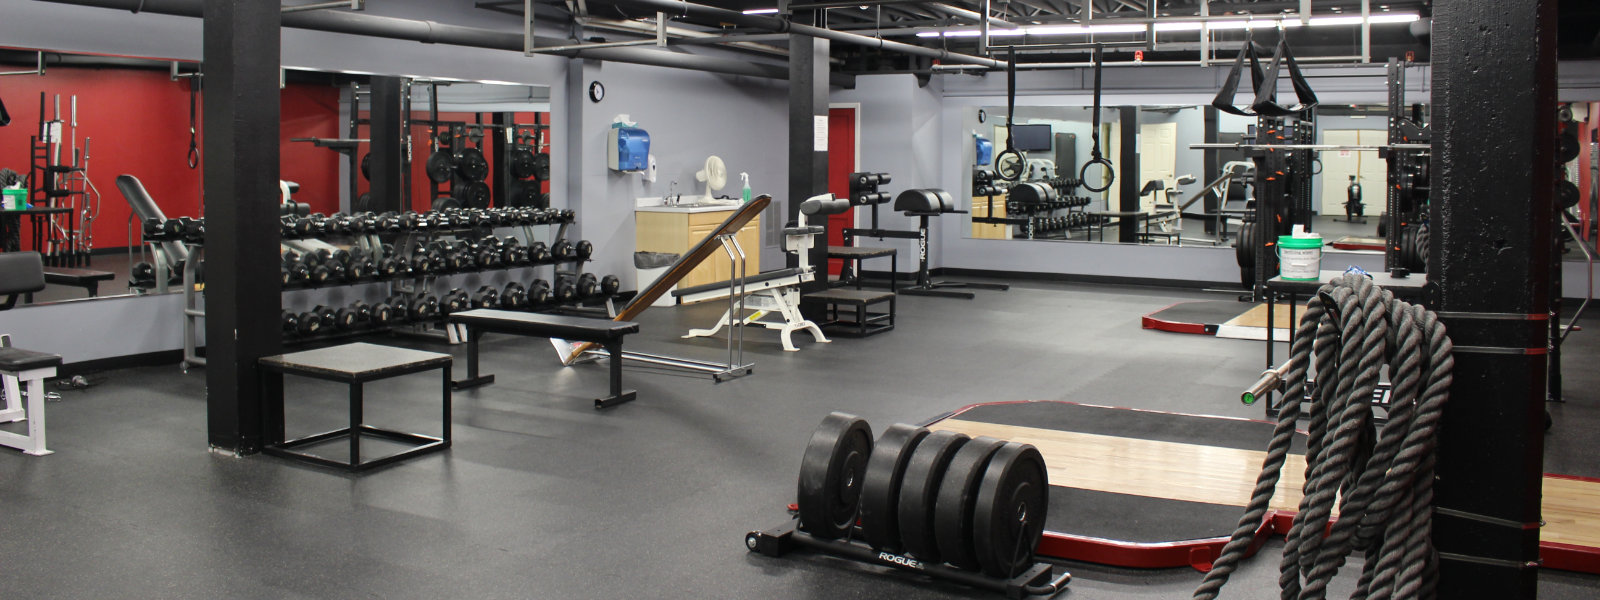 Lifting Gym